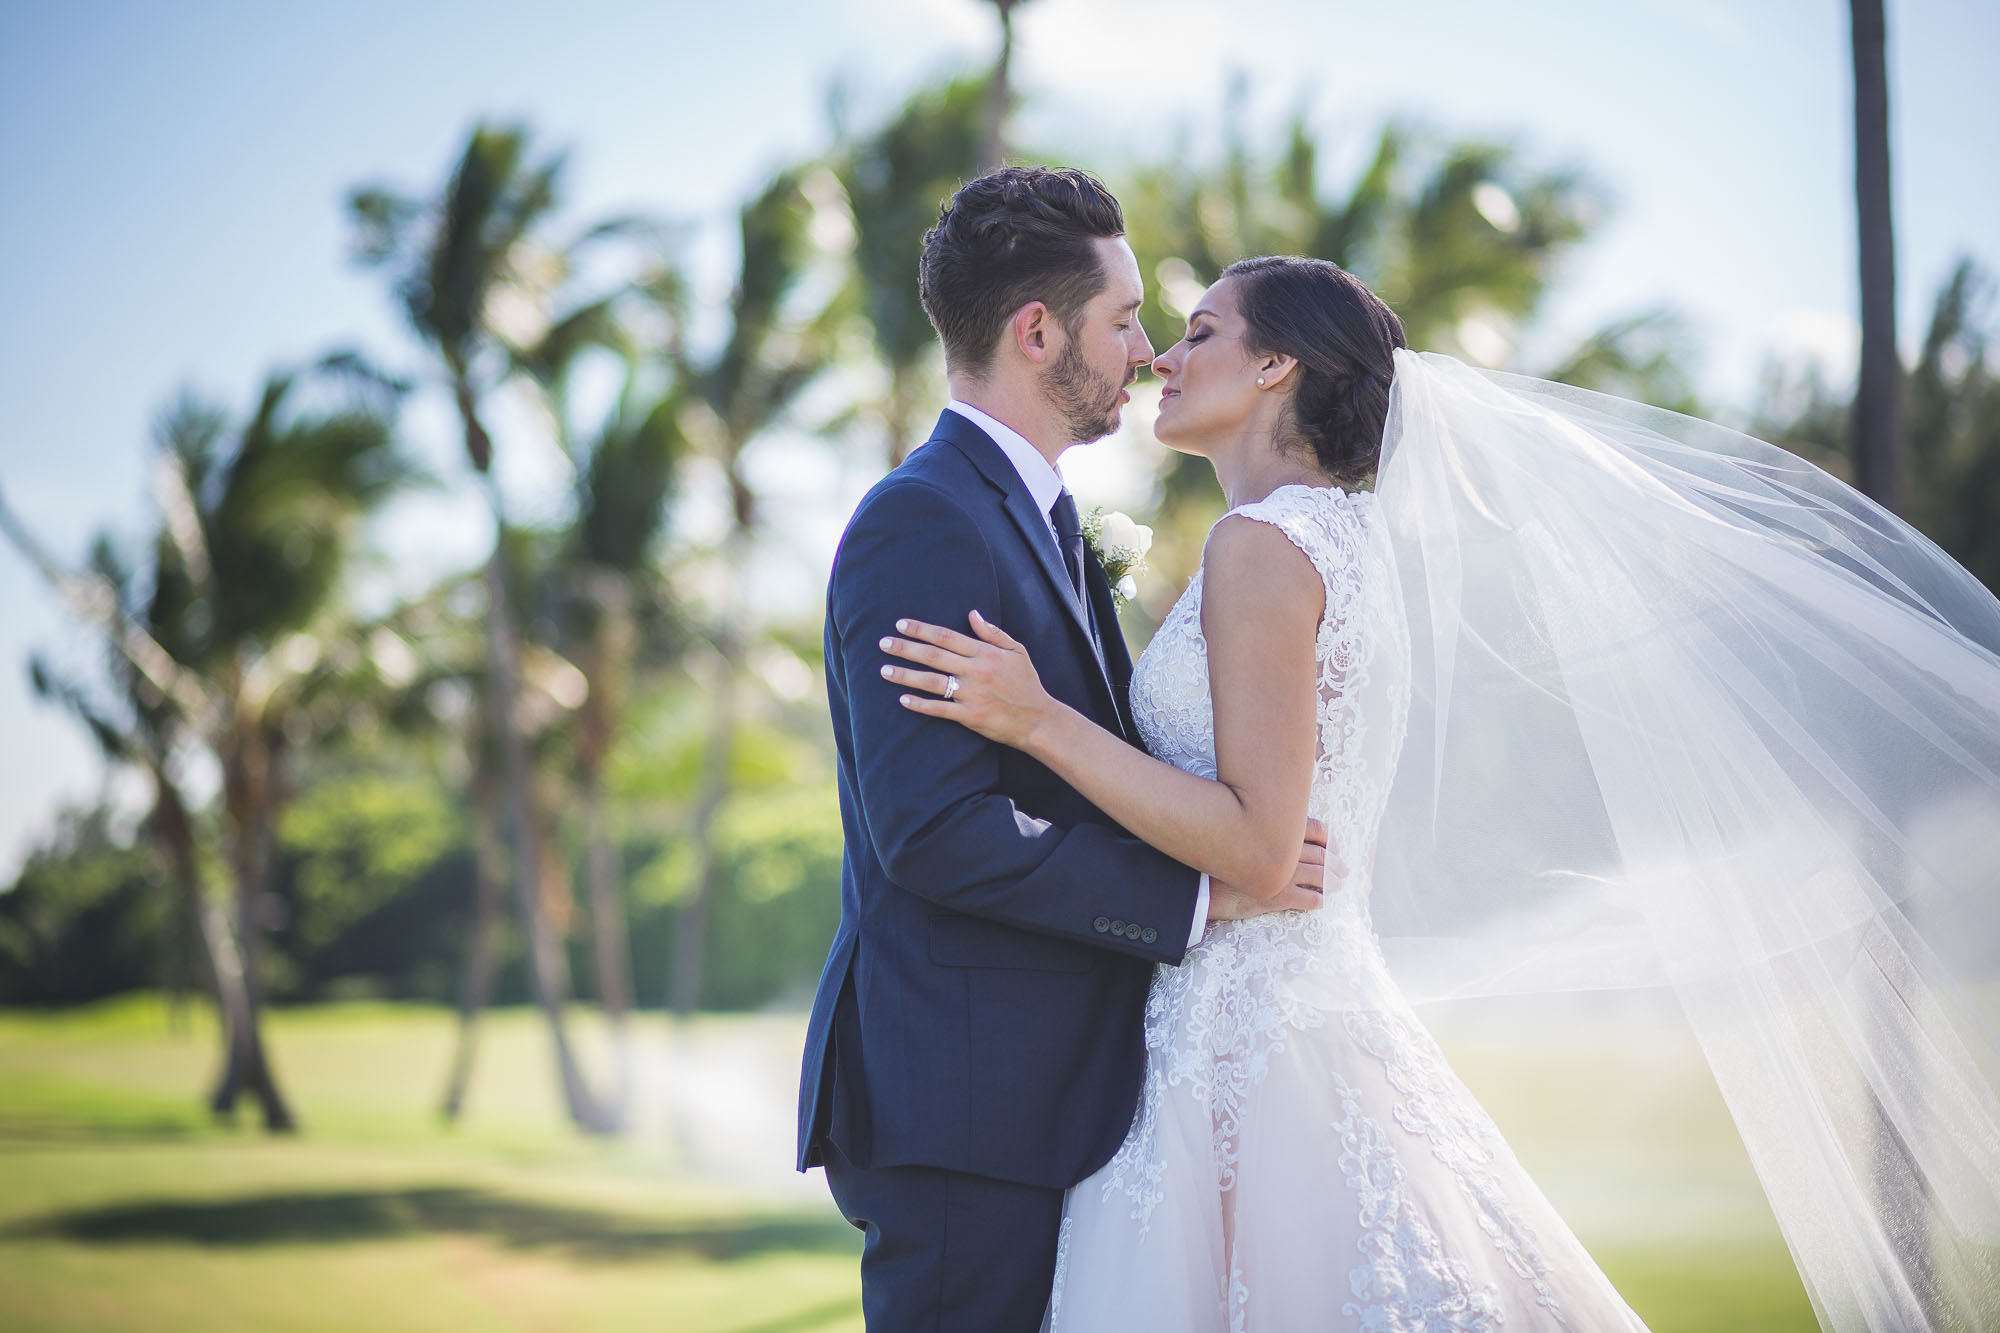 Greg Ferko Shot This Wedding in Ft Lauderdale 33